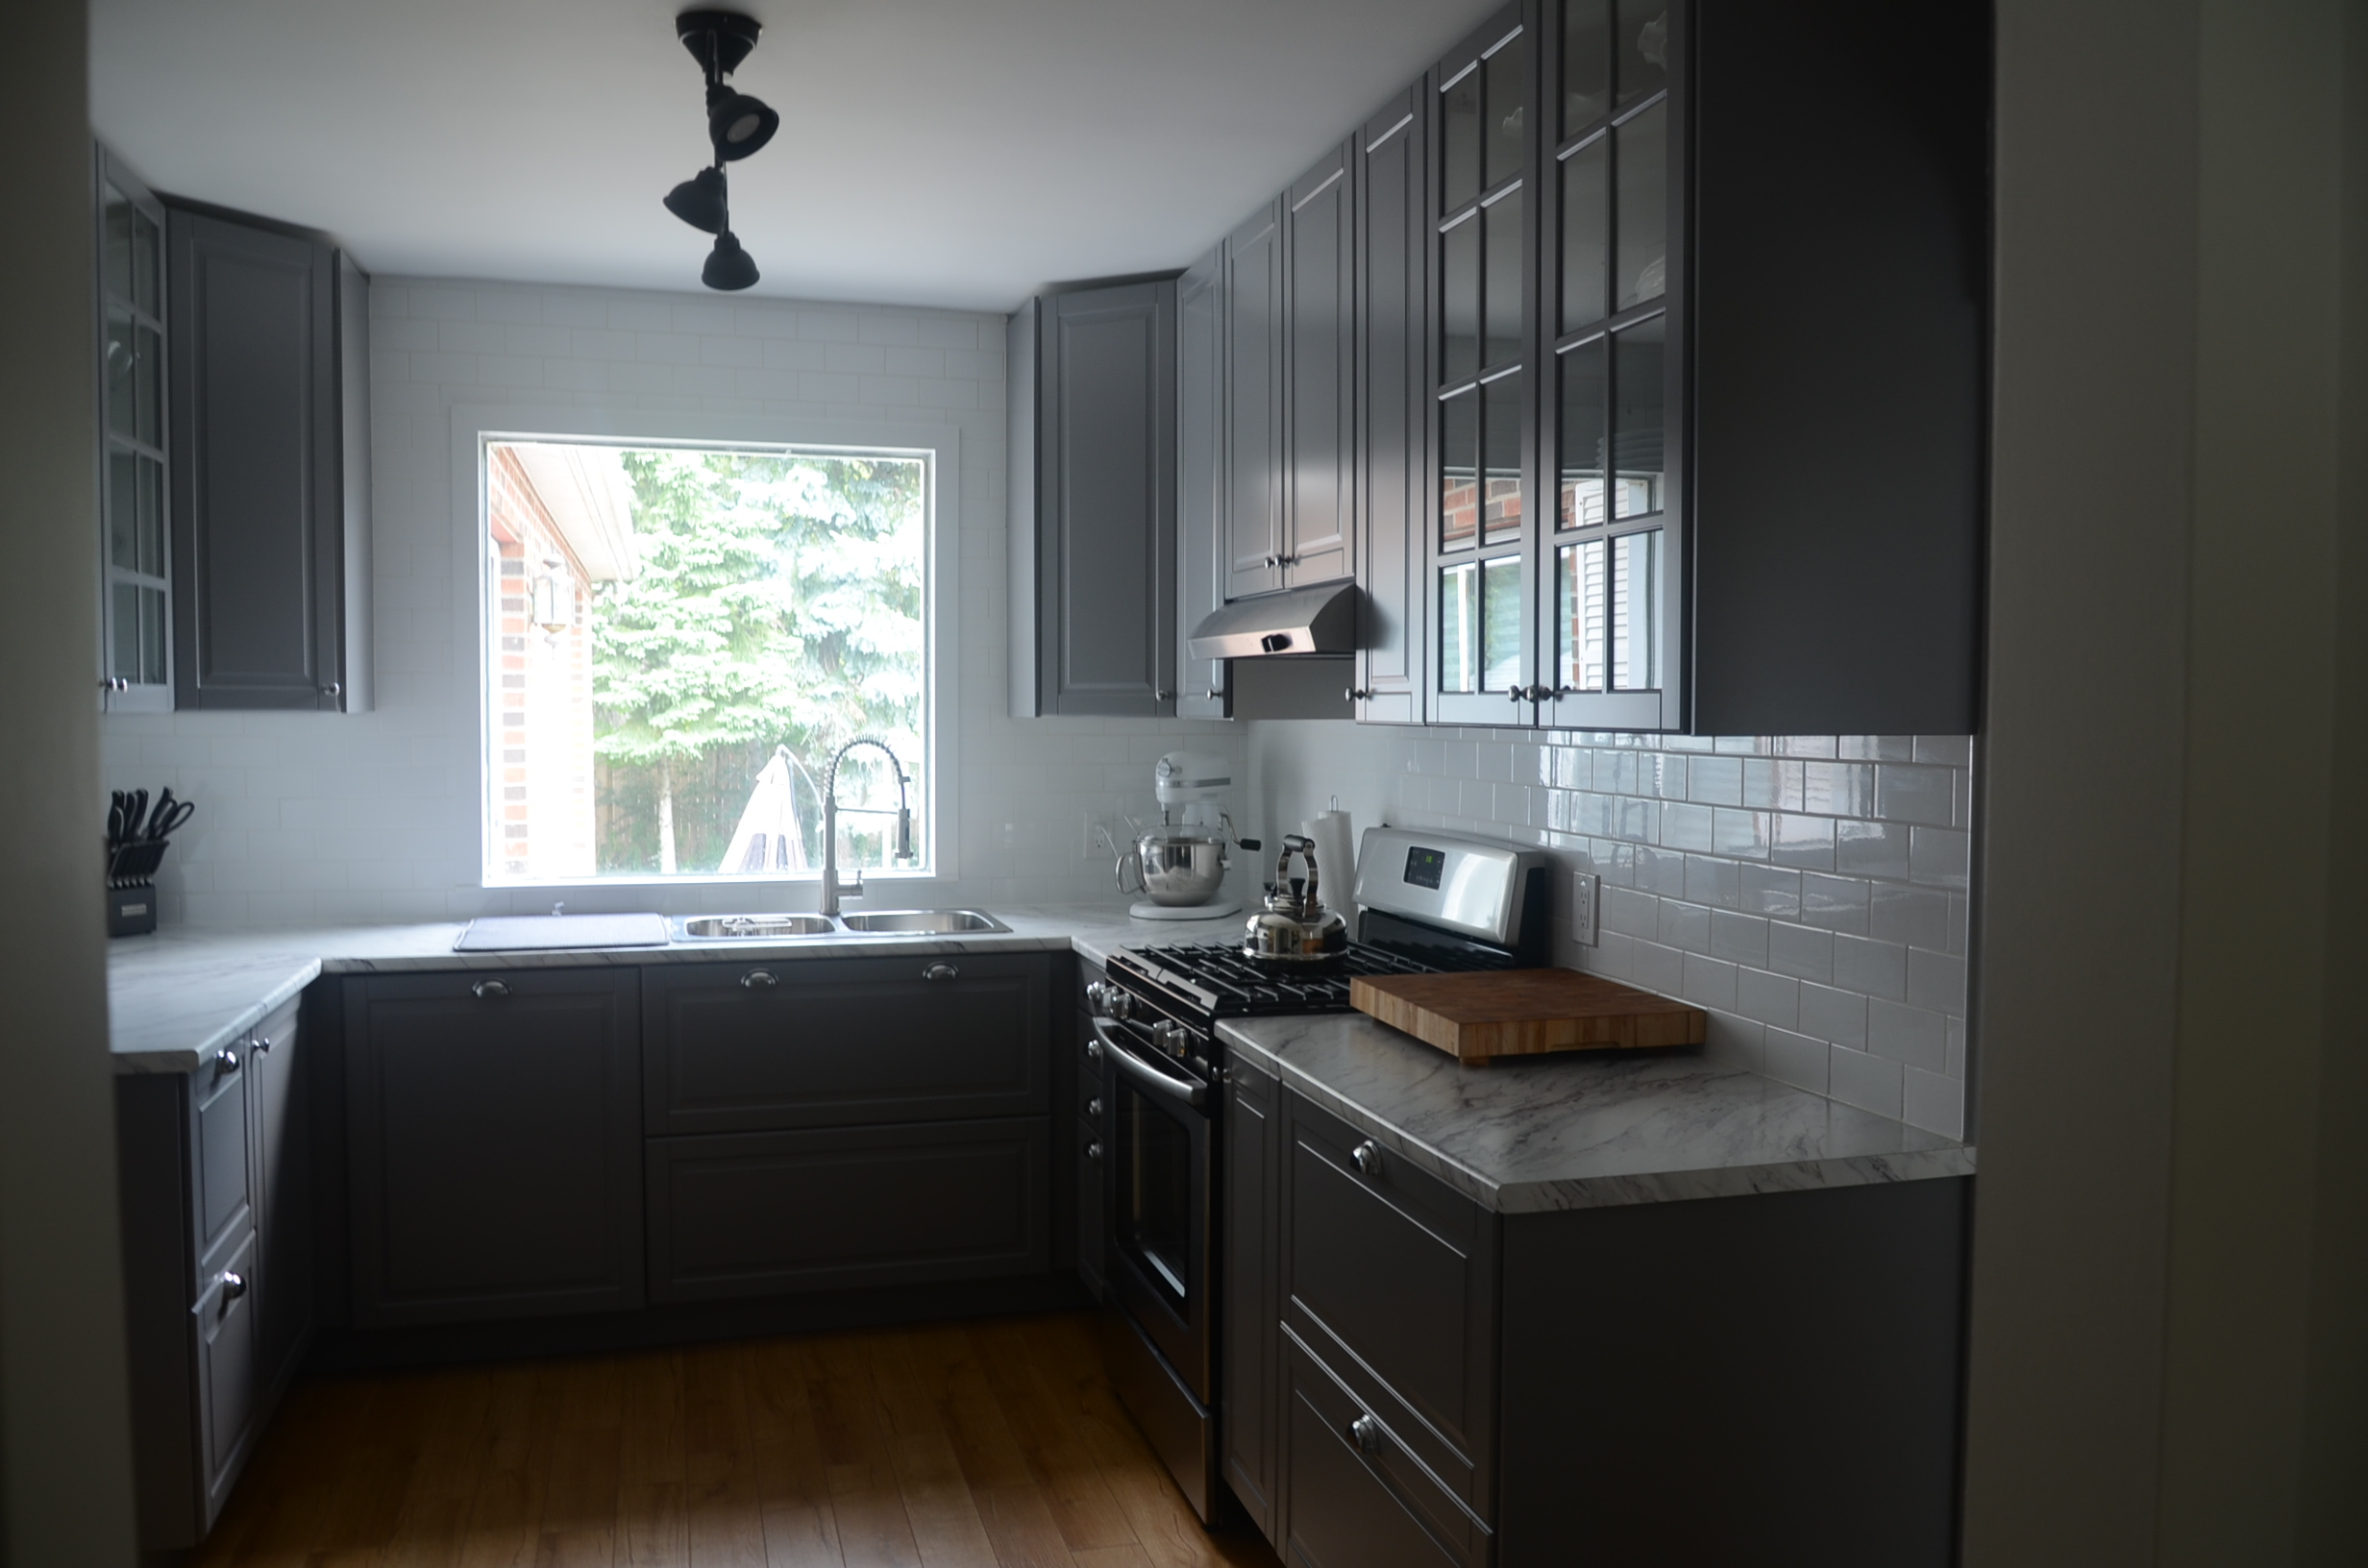 A Modern IKEA Kitchen Renovation In Less Than Month